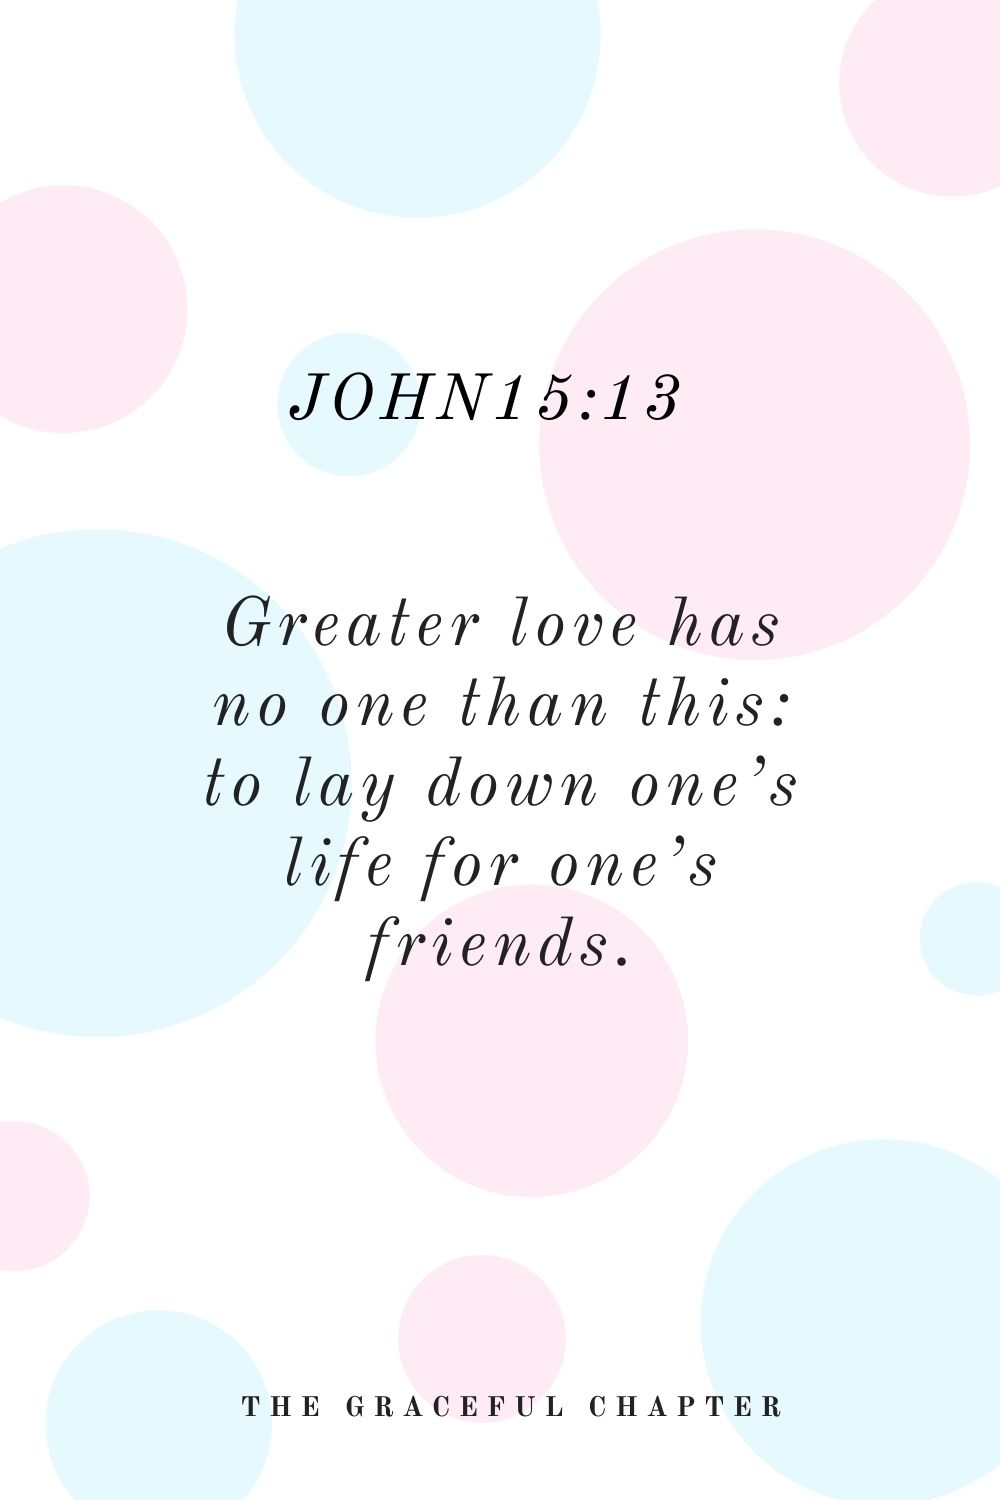 Greater love has no one than this: to lay down one's life for one's friends. John15:13